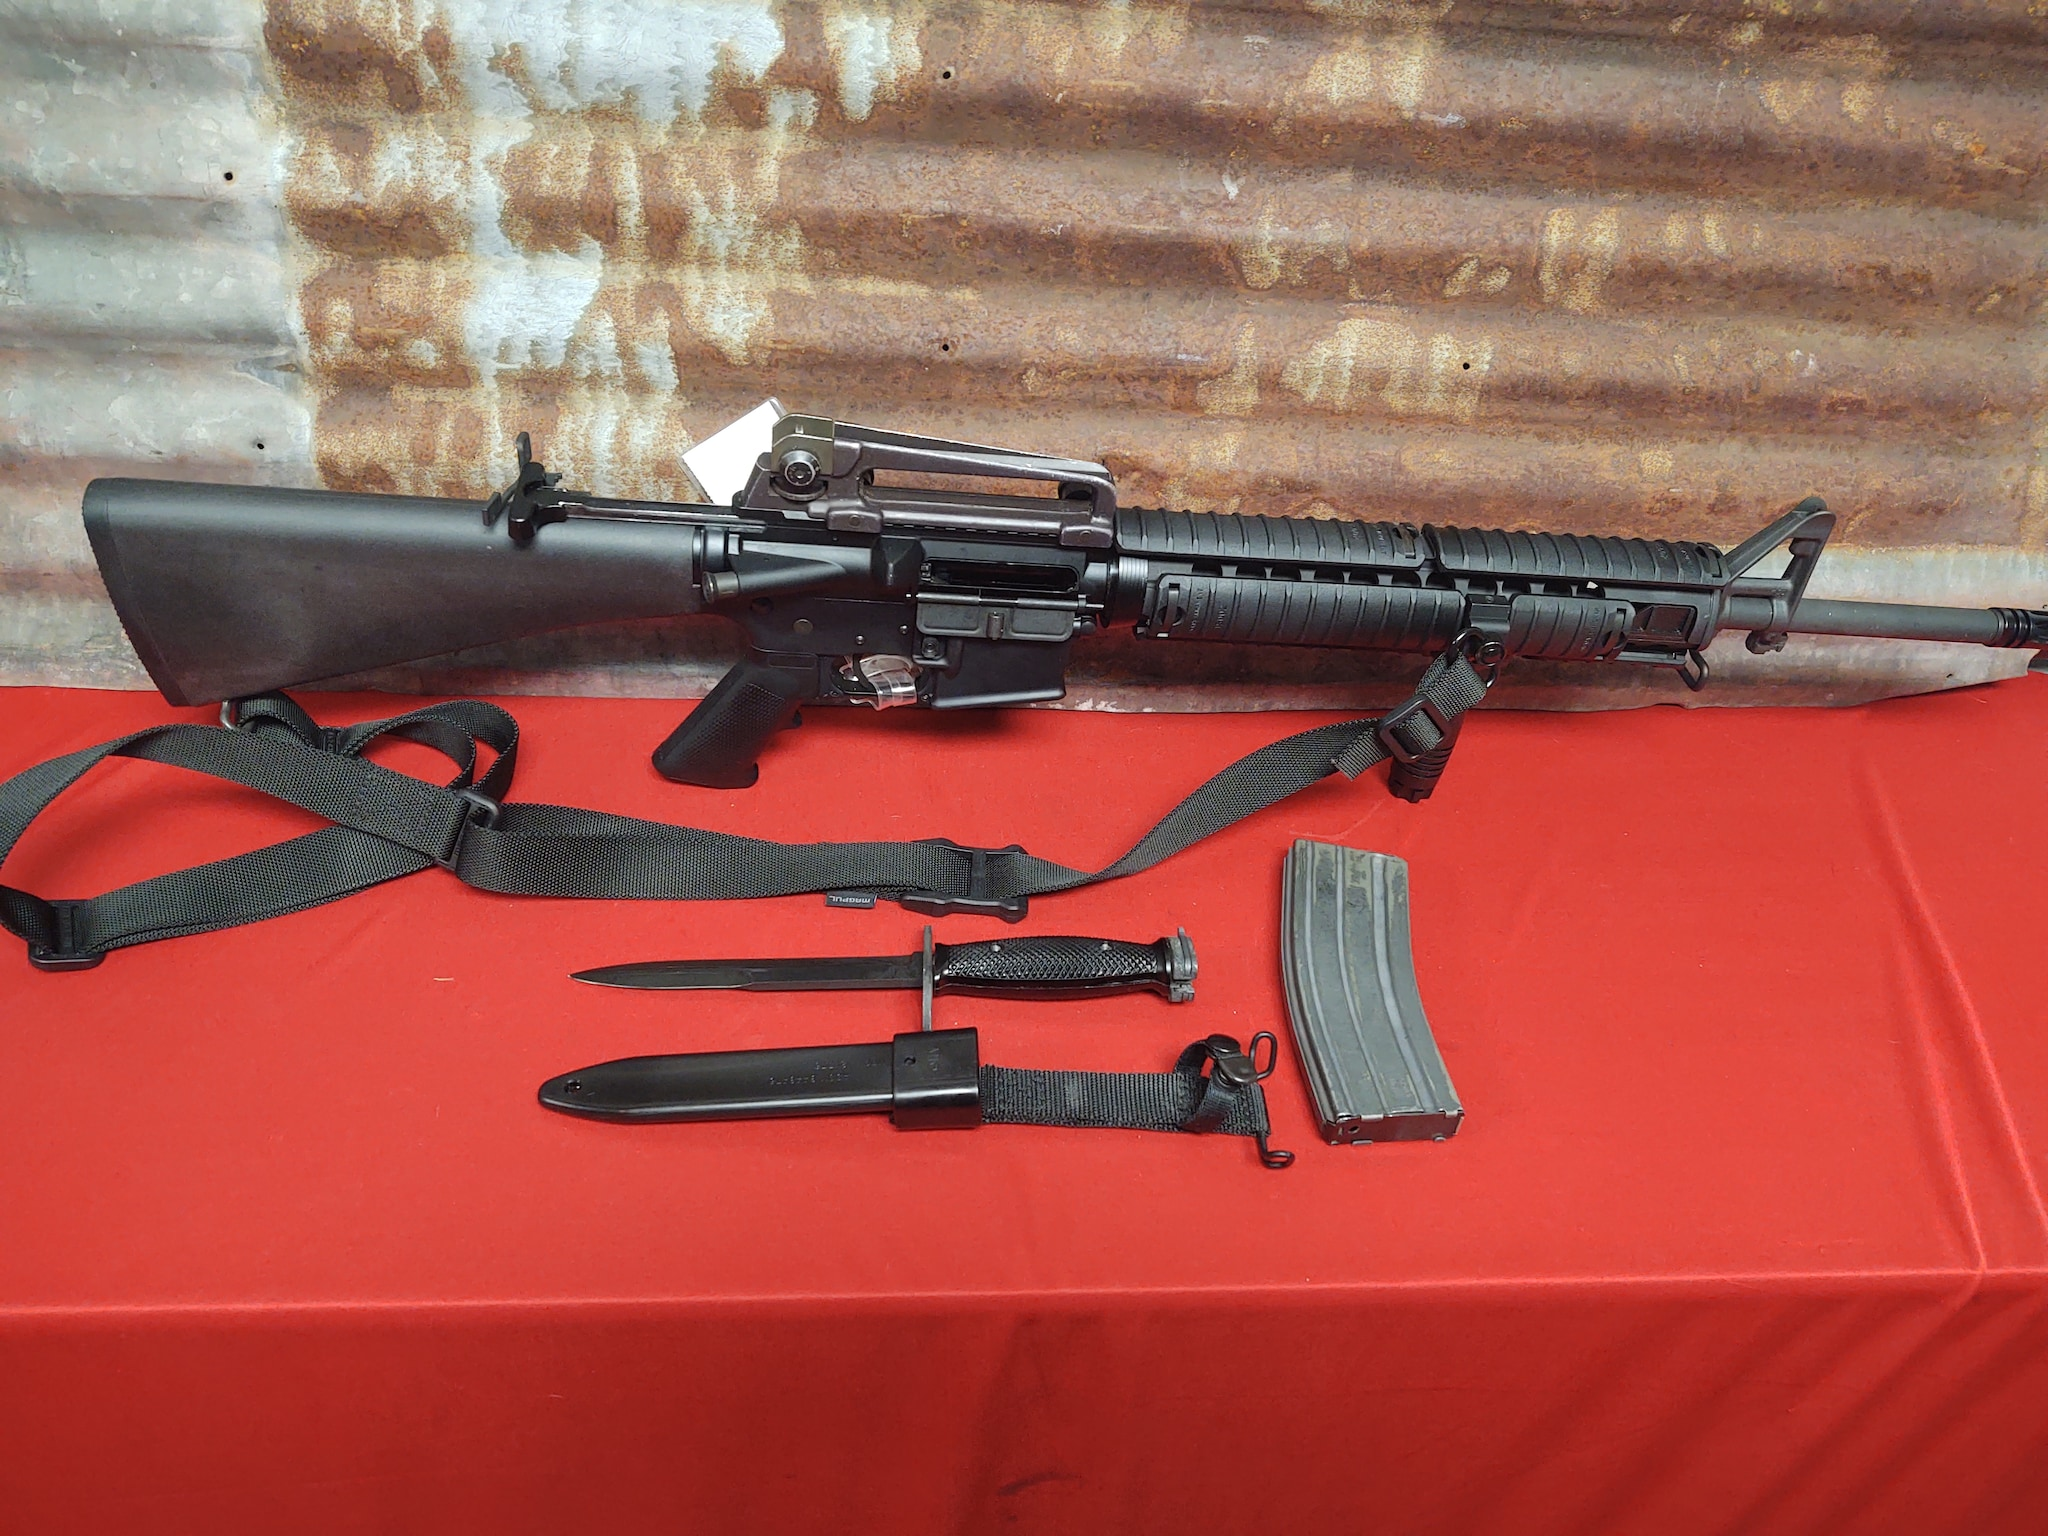 ANDERSON MANUFACTURING FEATURELESS AM-15 AR AR-15 M4 M16